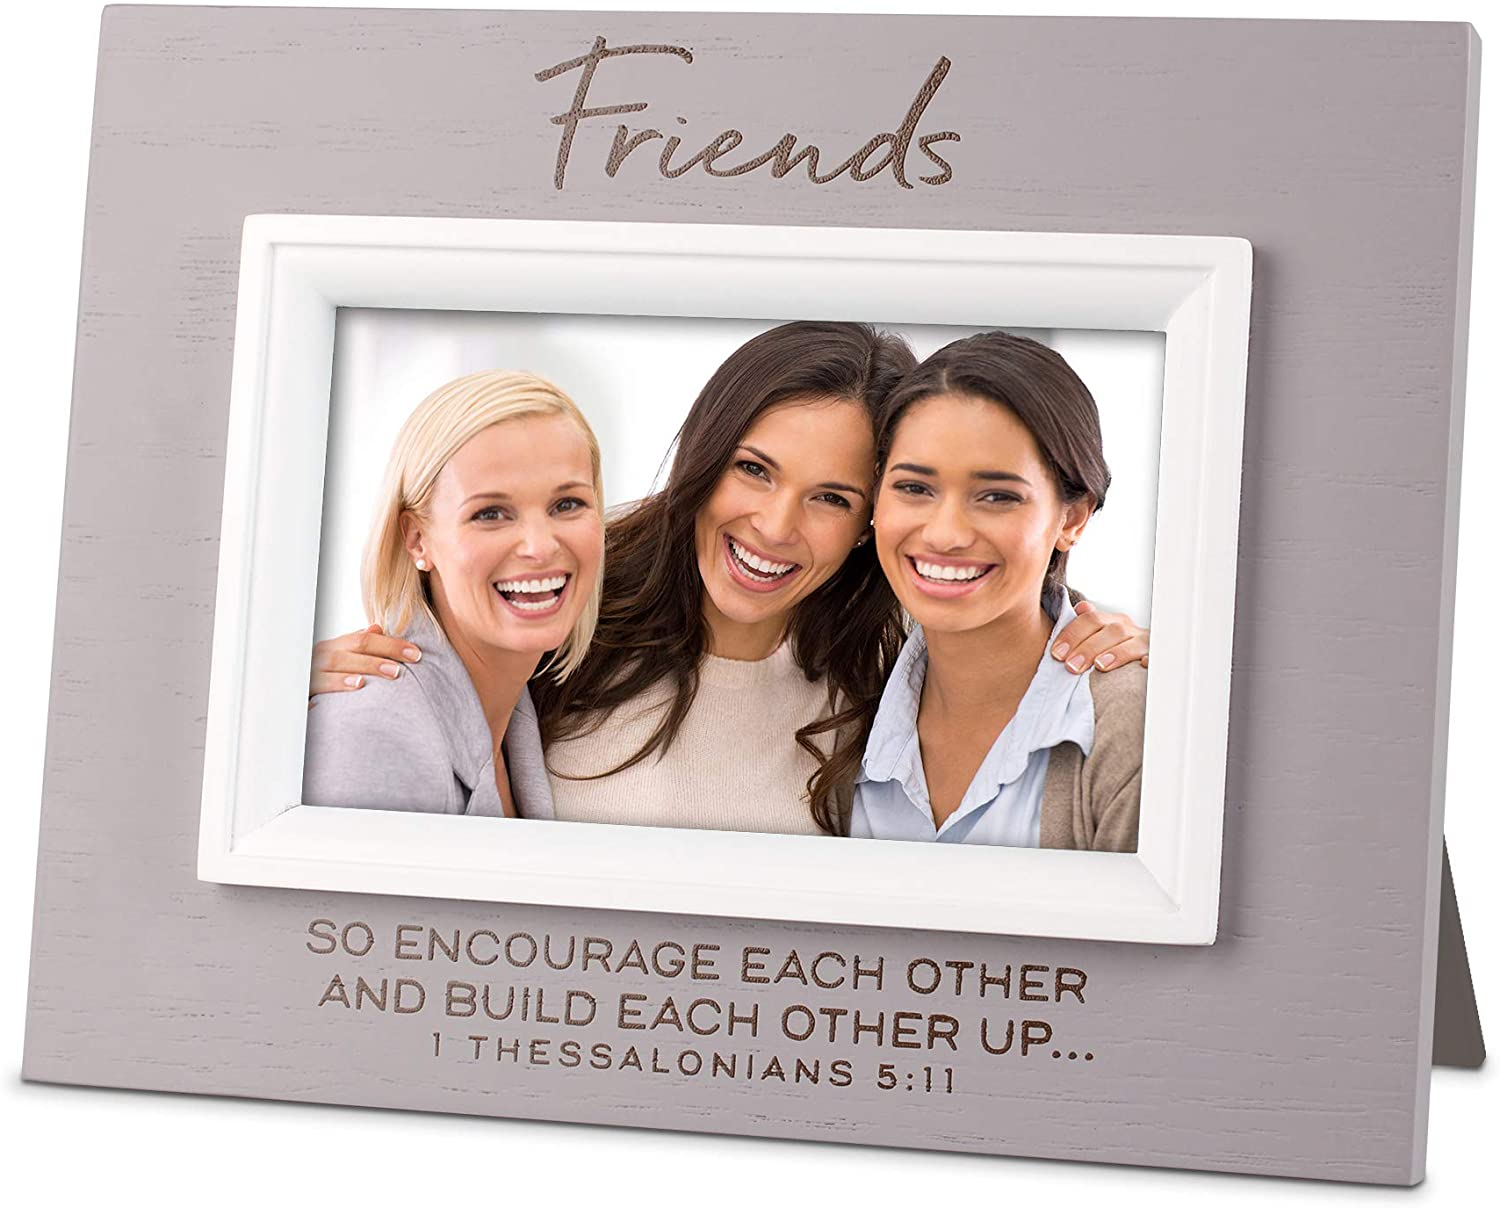 Lighthouse Christian Products Friends Encourage Build Up Nobel Grey 8 x 6.25 Wood Photo Frame